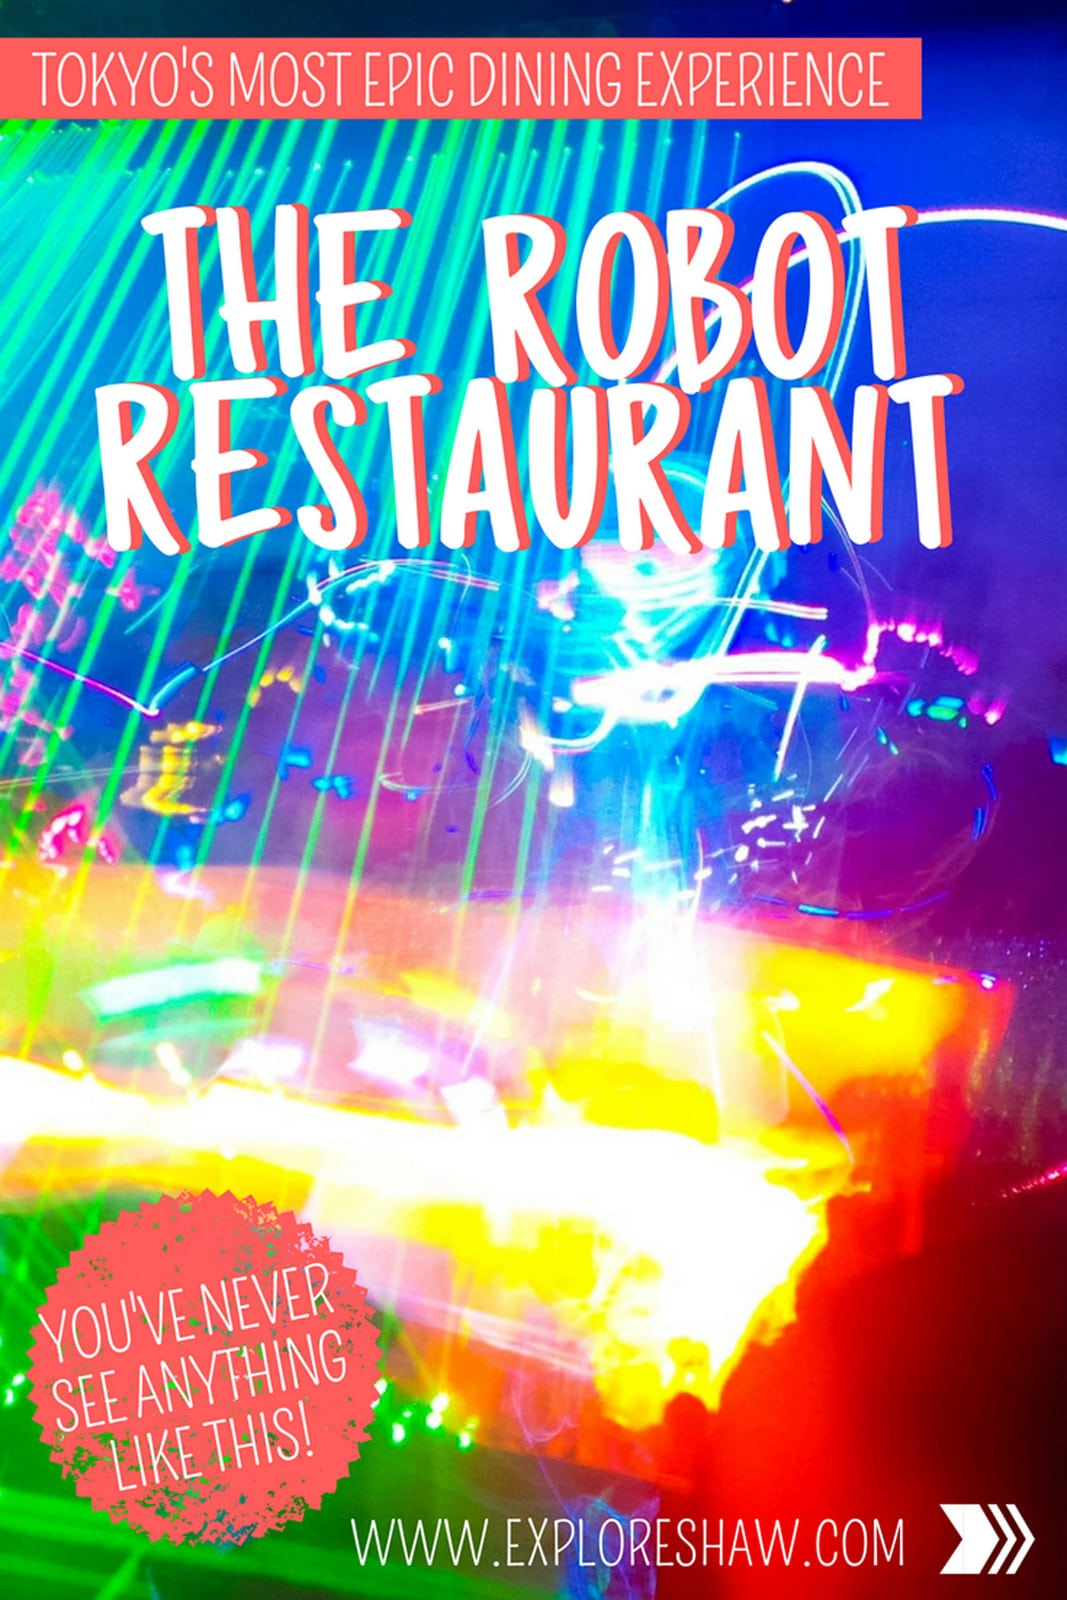 For one of the craziest futuristic shows in Japan, you need to book a table at the Robot Restaurant and experience this insane Japanese cabaret show. #Japan #Tokyo